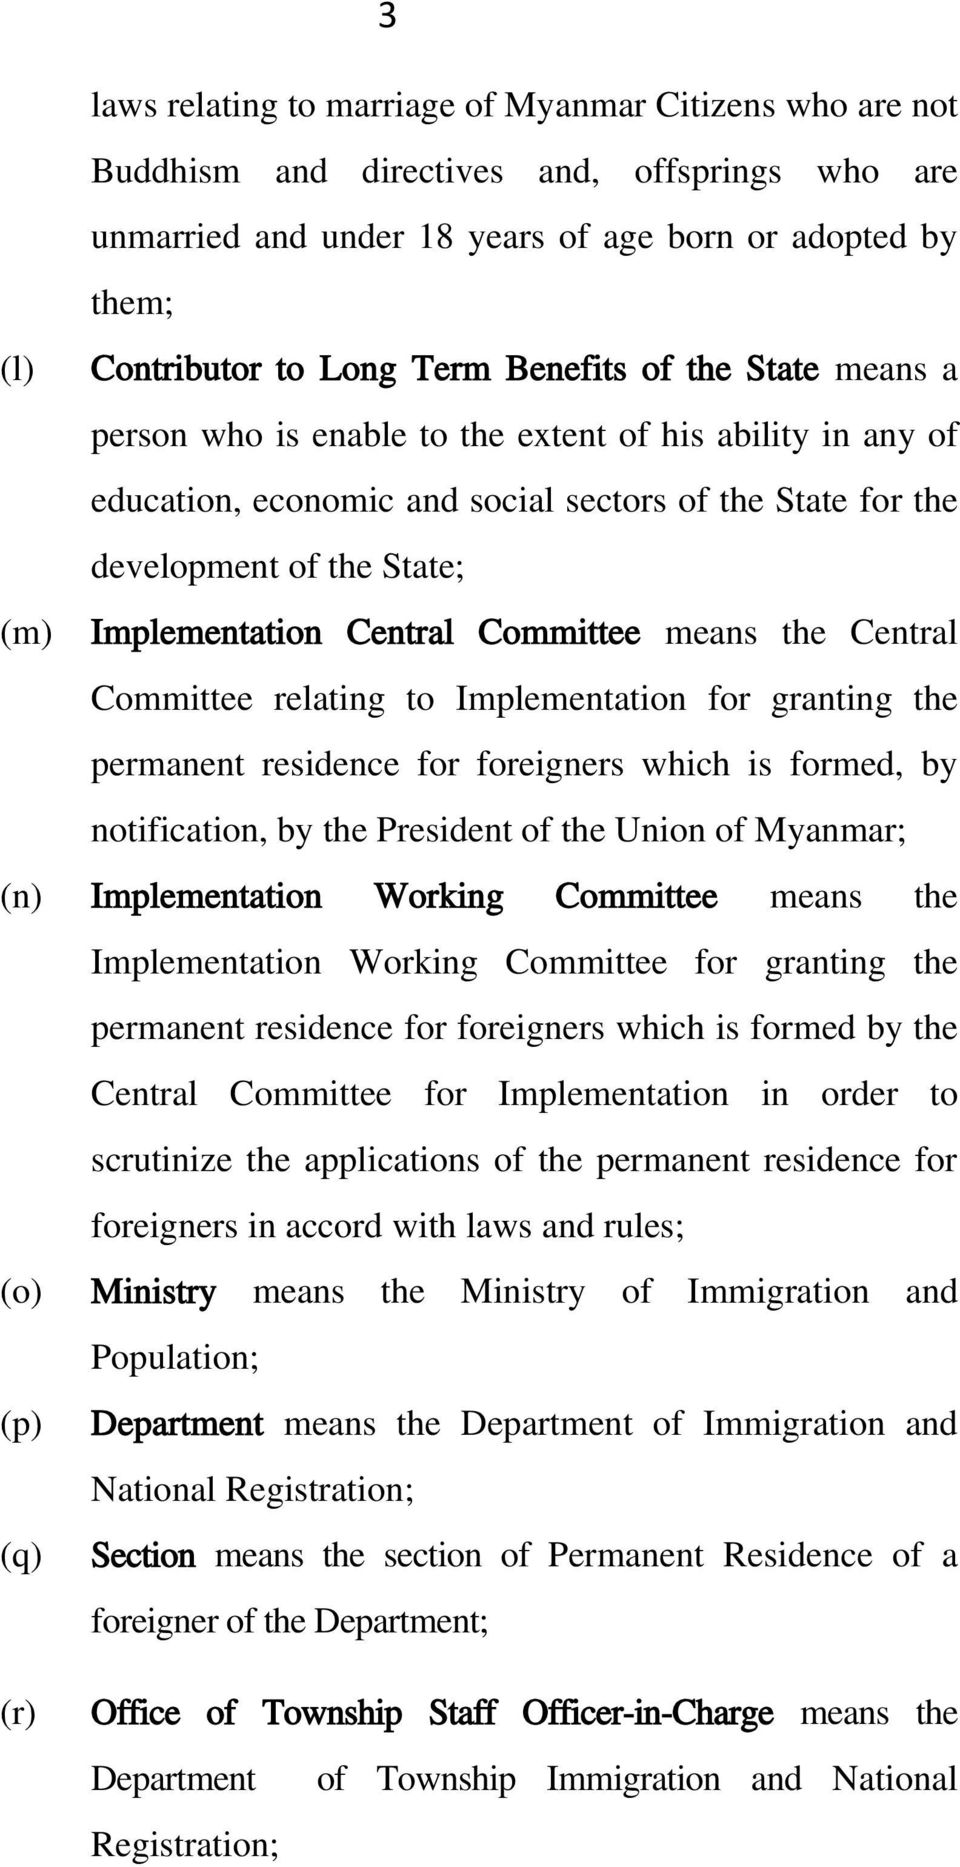 Central Committee means the Central Committee relating to Implementation for granting the permanent residence for foreigners which is formed, by notification, by the President of the Union of